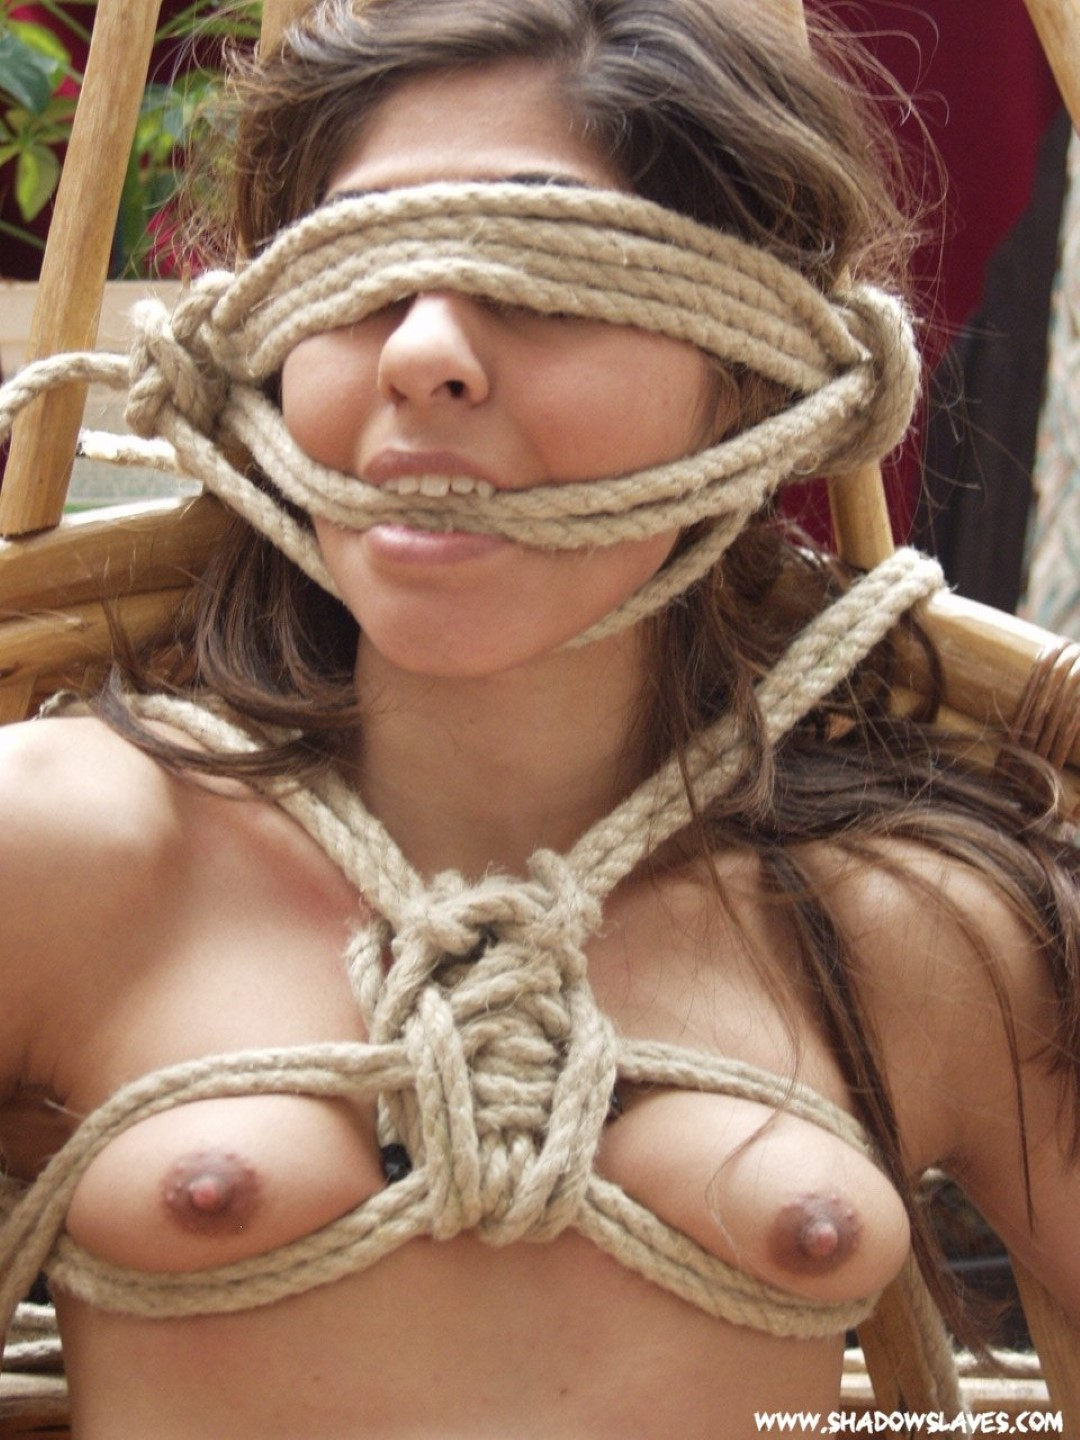 Regret, that, bondage with ropes something is